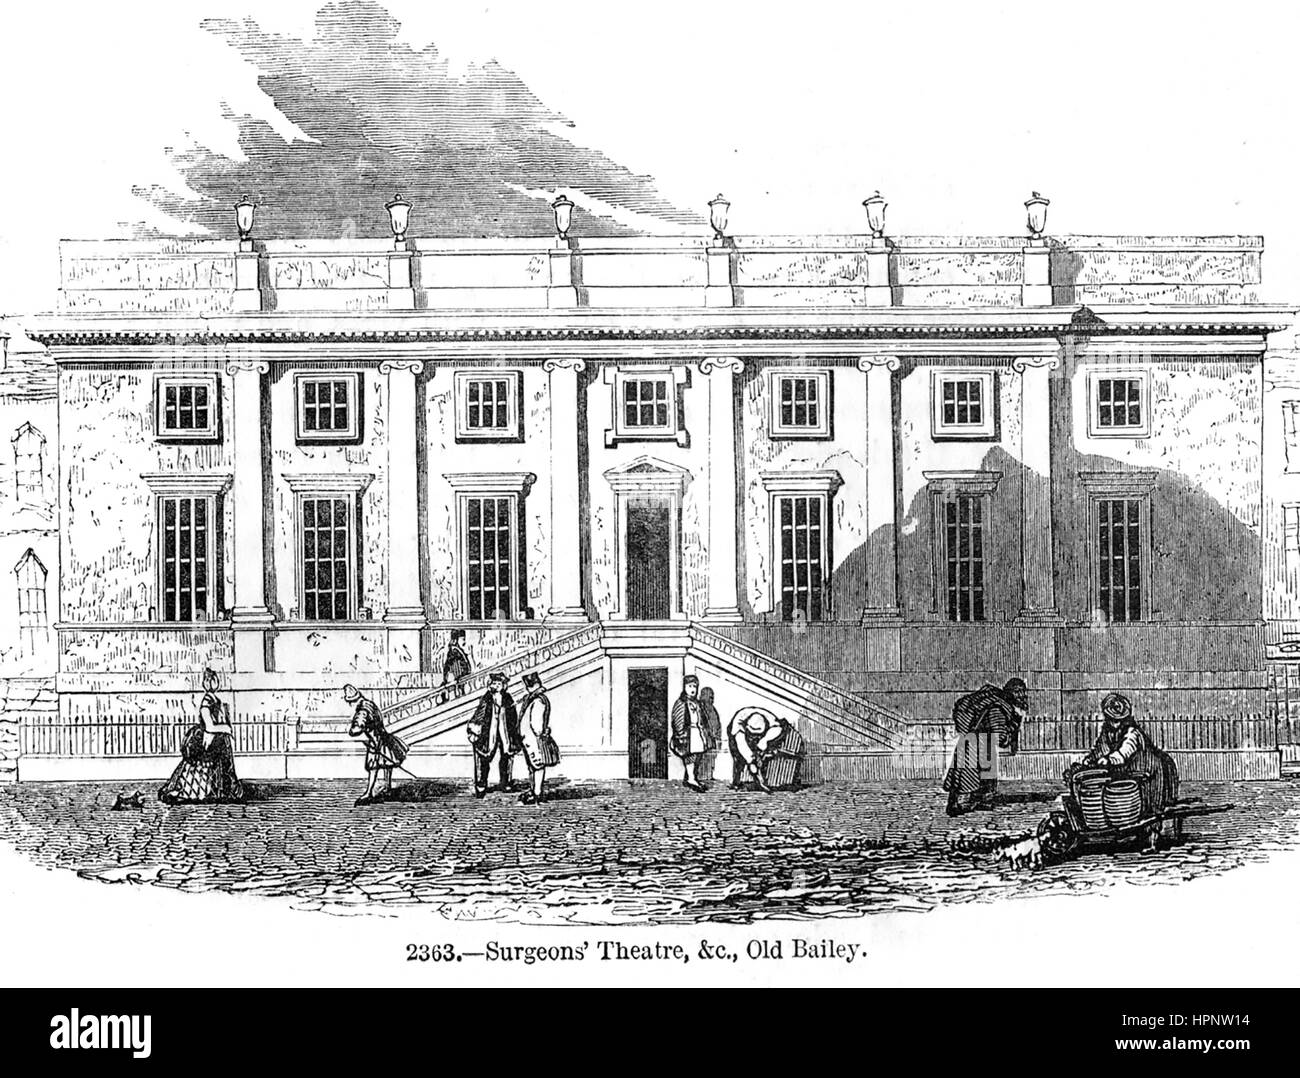 I CHIRURGHI Theatre in Old Bailey, Londra, circa 1755 Foto Stock